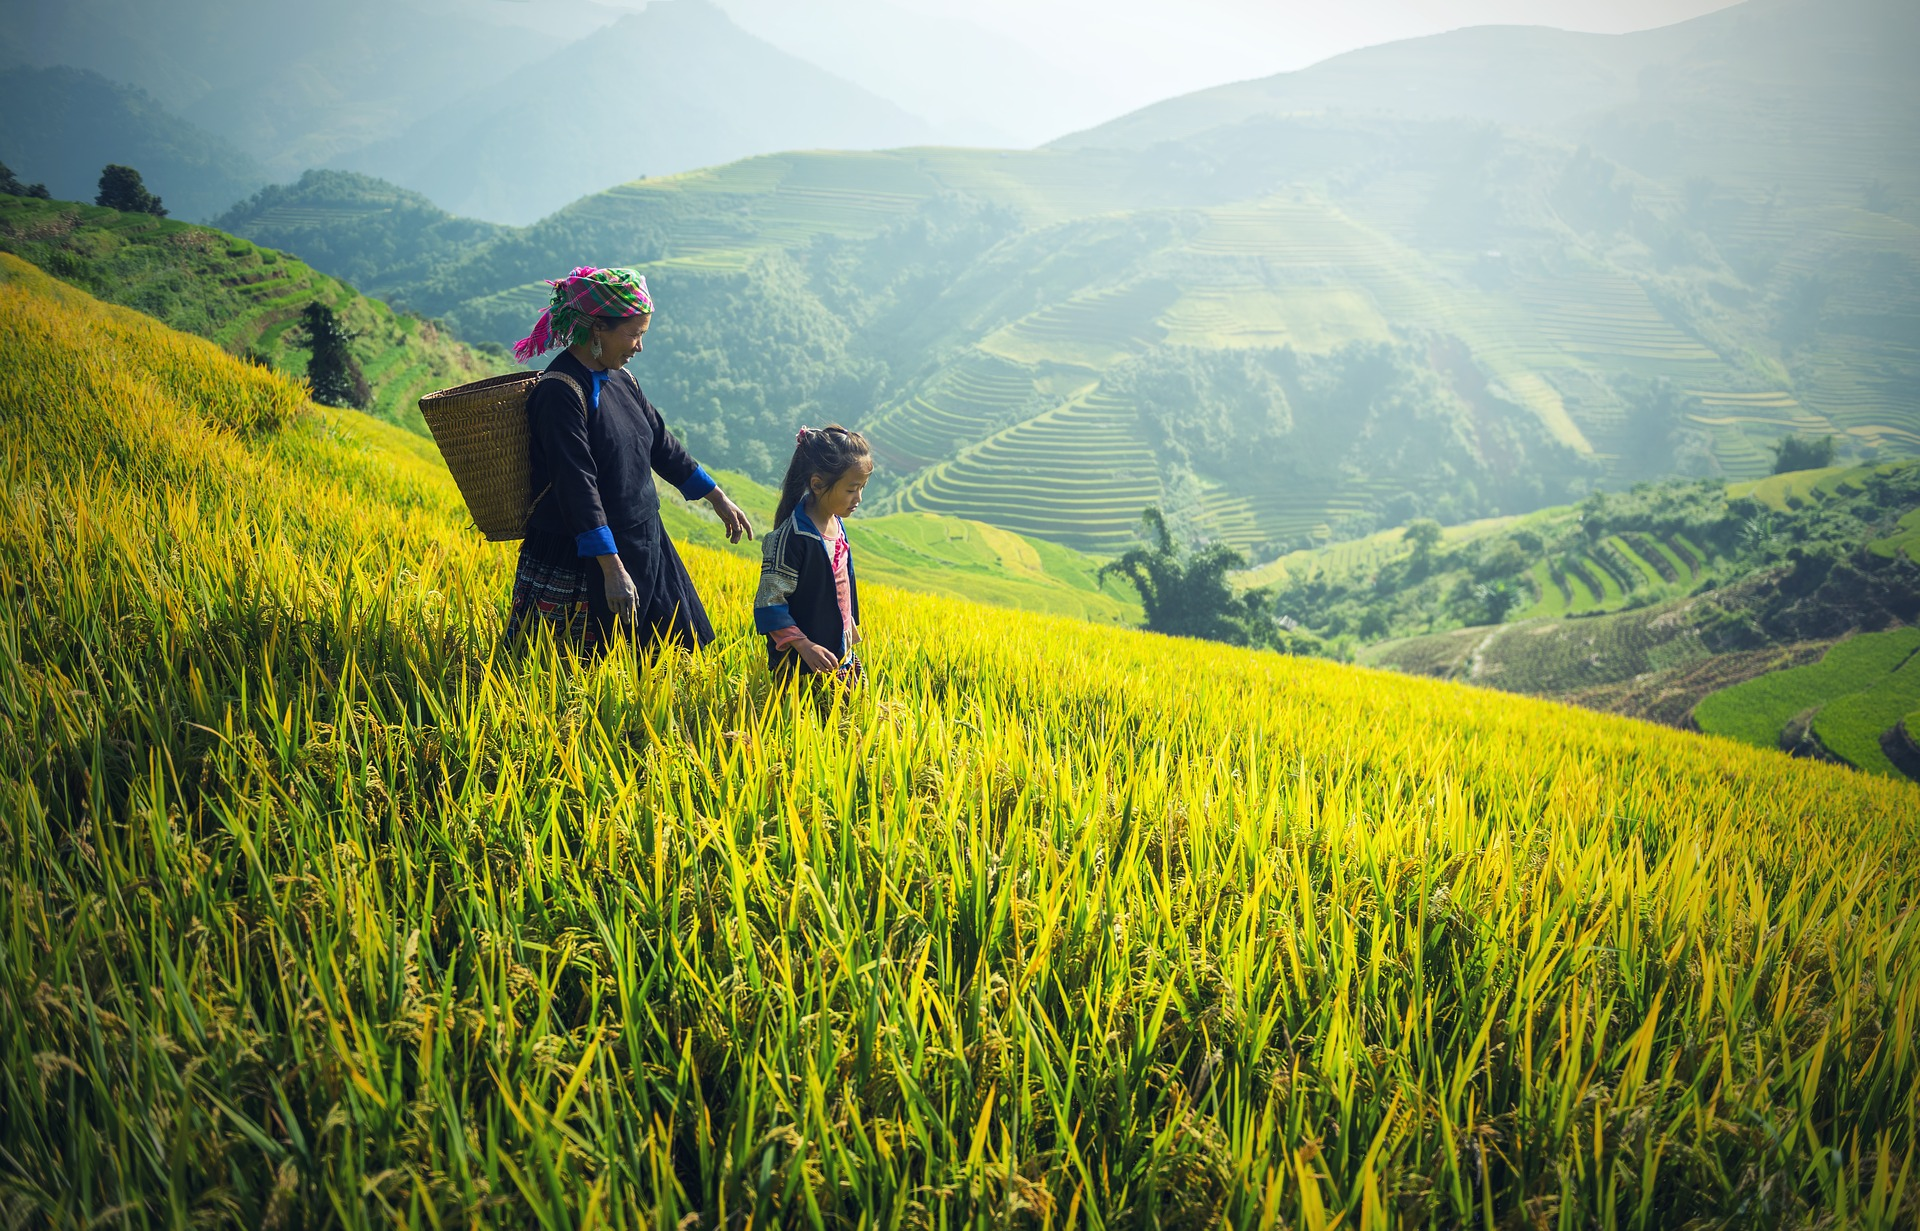 Hmong mother and daughter walking